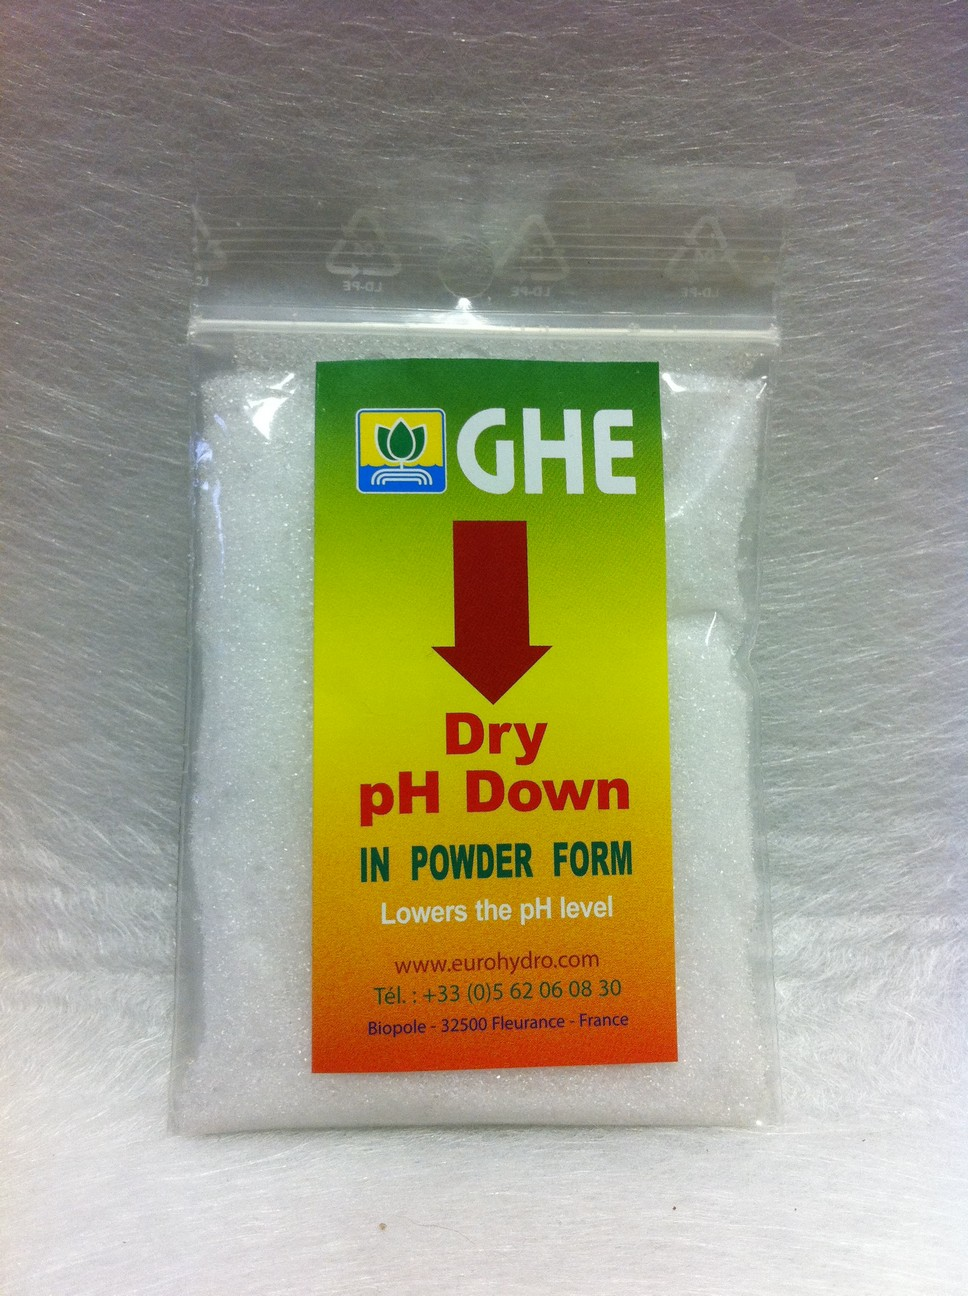 GHE Dry pH Down 25g